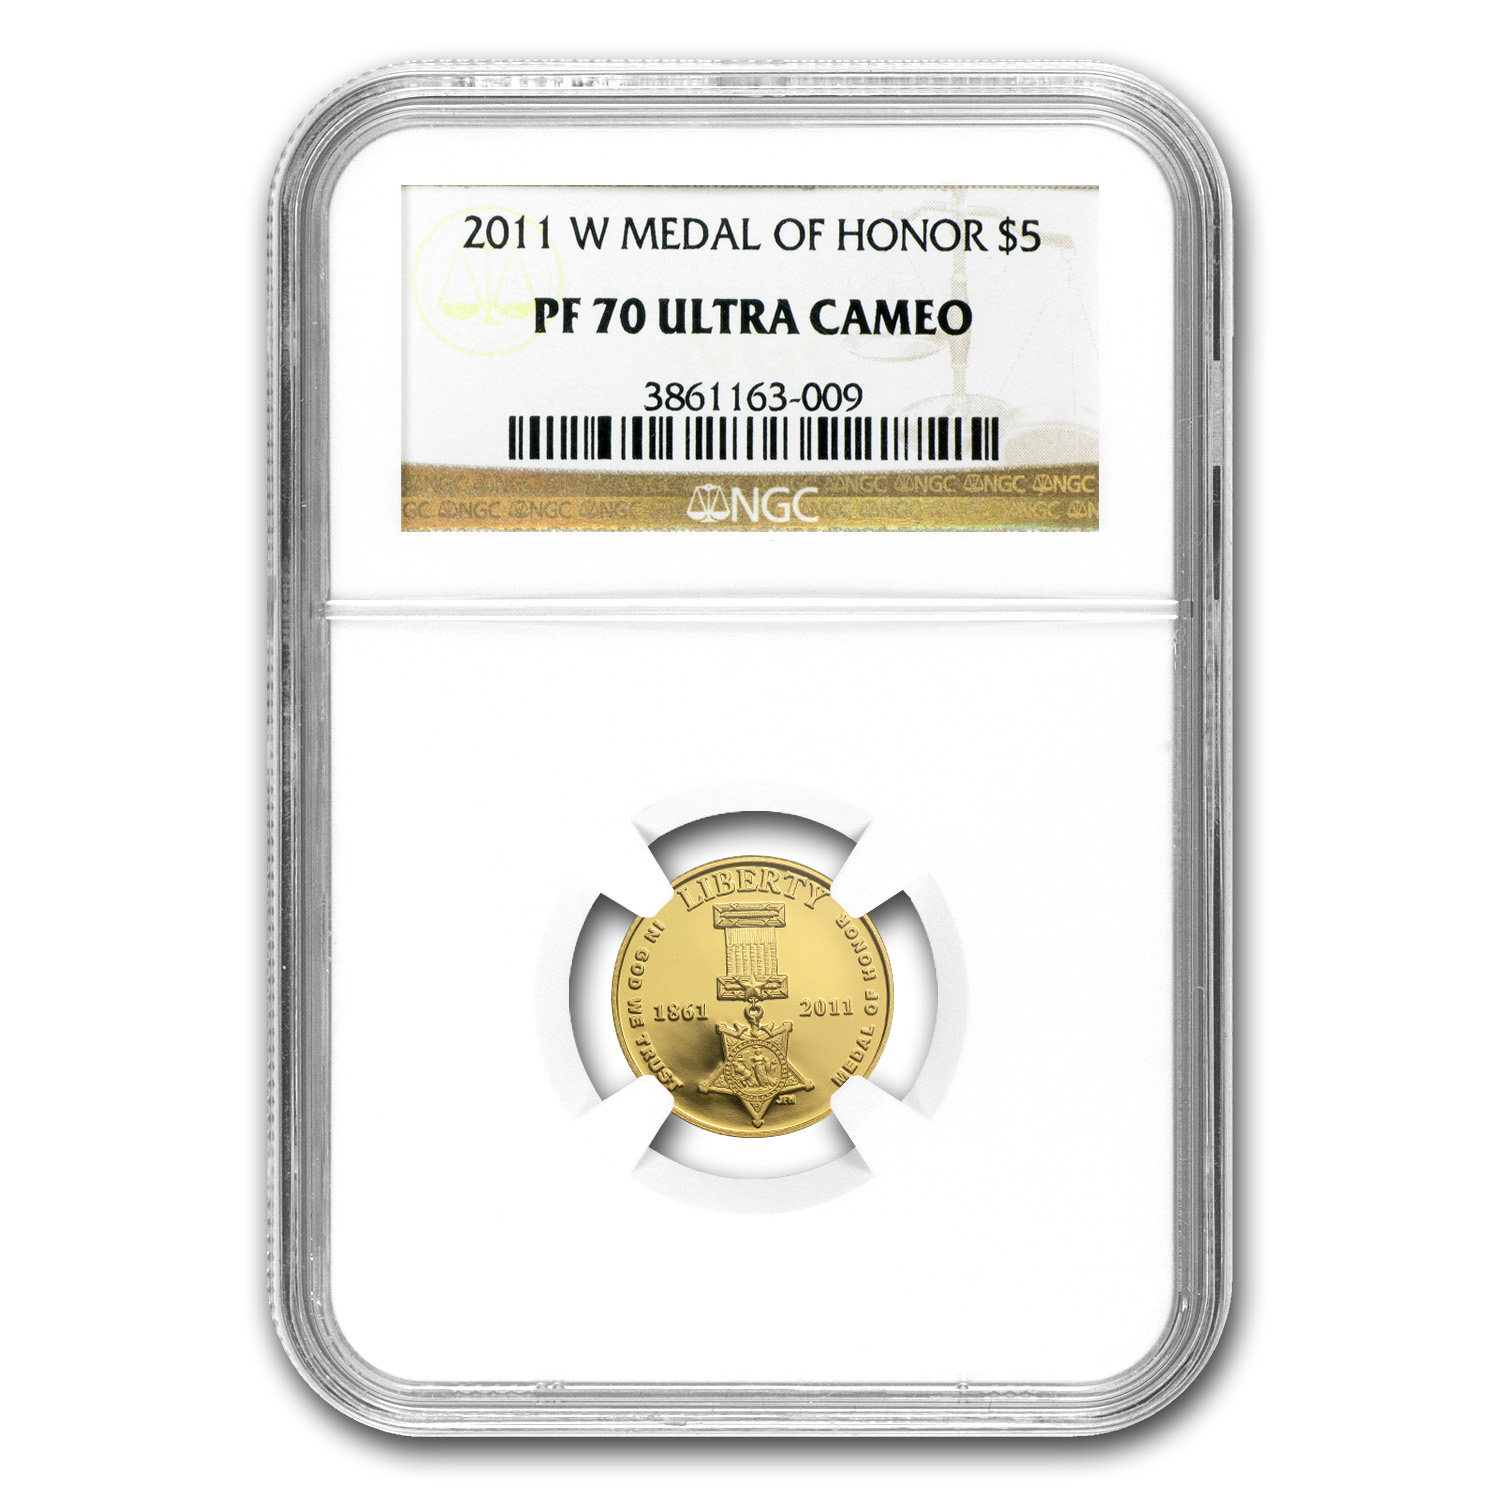 2011-W $5 Gold Commemorative Medal of Honor PF-70 NGC